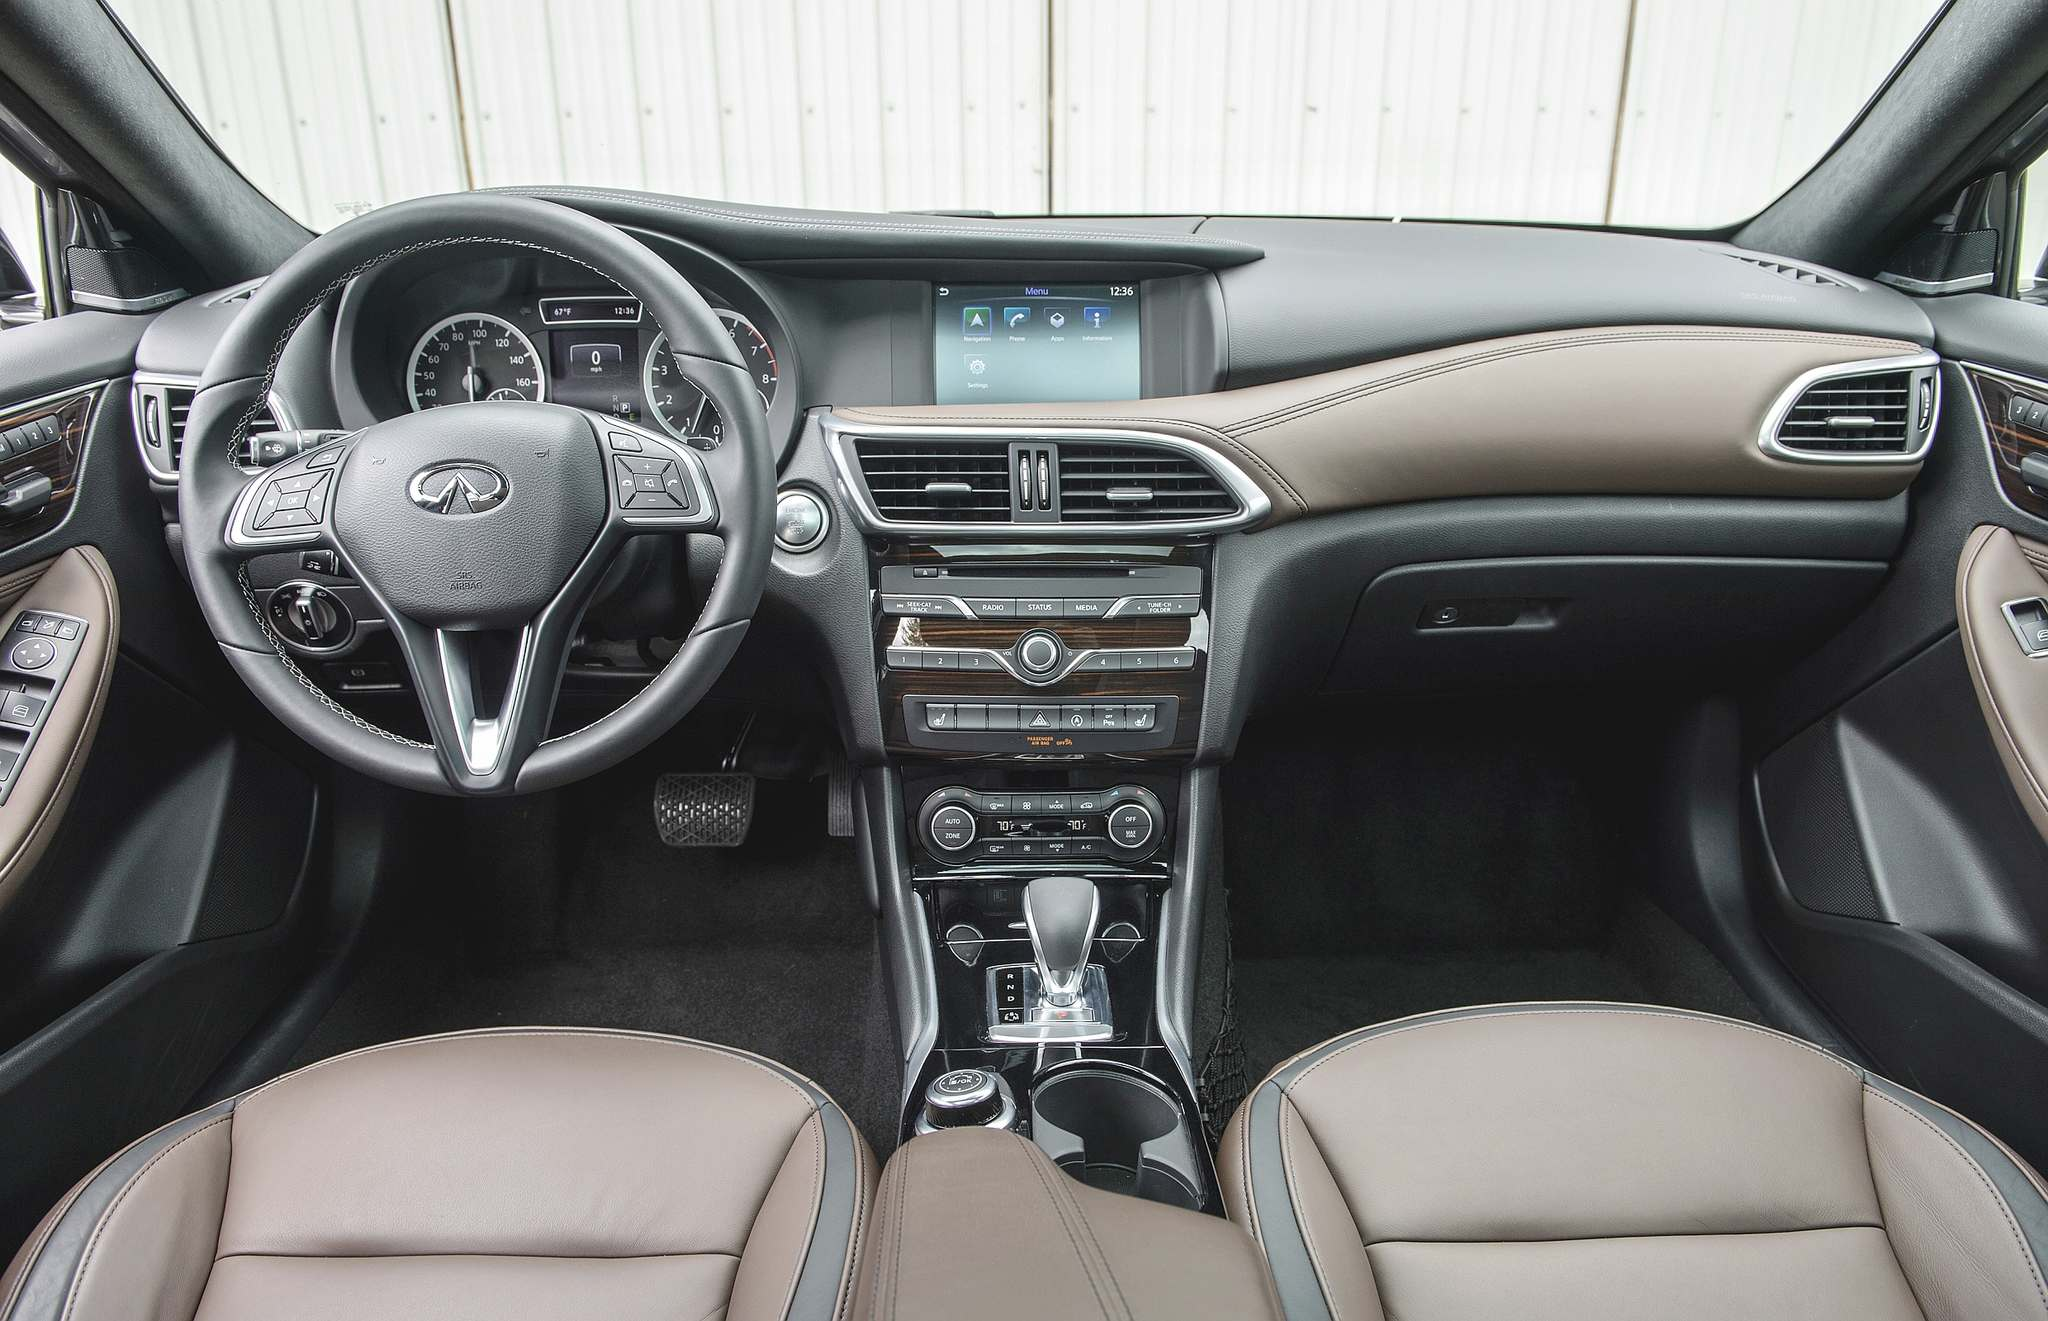 Clayton Seams / postmedia network inc.The 2017 Infiniti QX30 brings a level of refinement to the compact crossover market that was previosuly lacking.